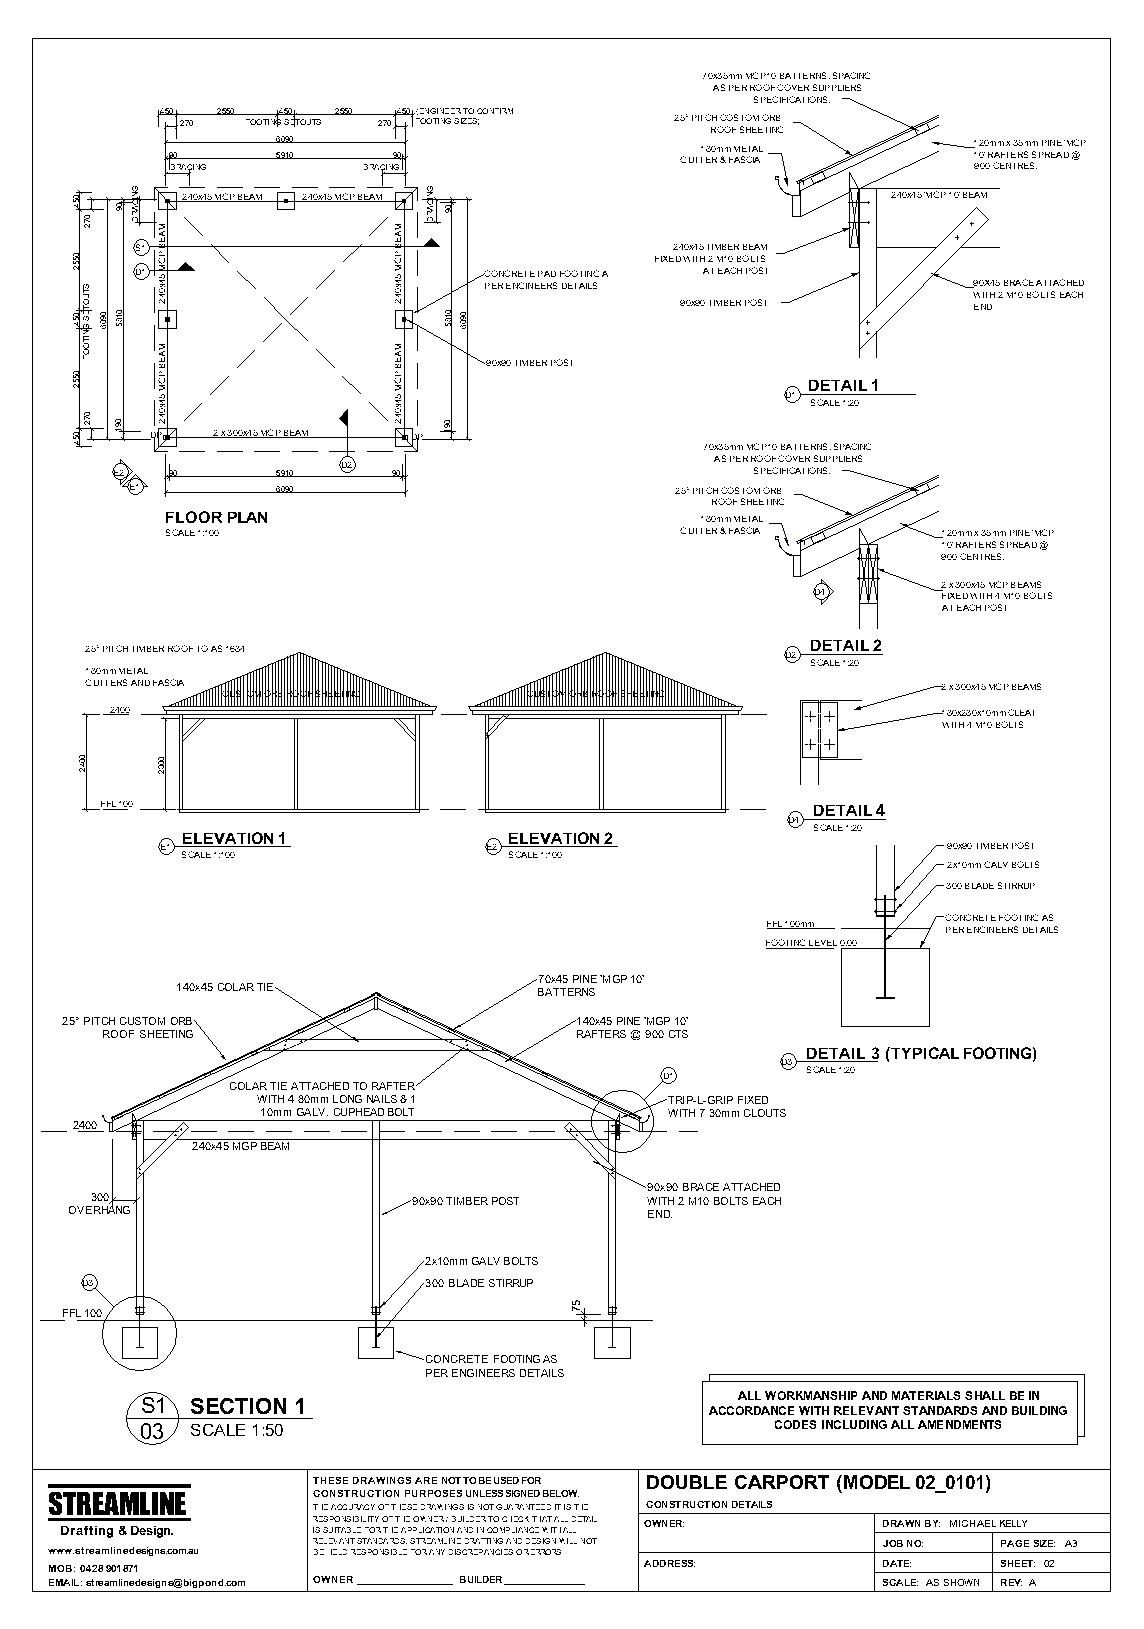 Download Free Carport Plans Building Carport Plans Carport Carport Designs